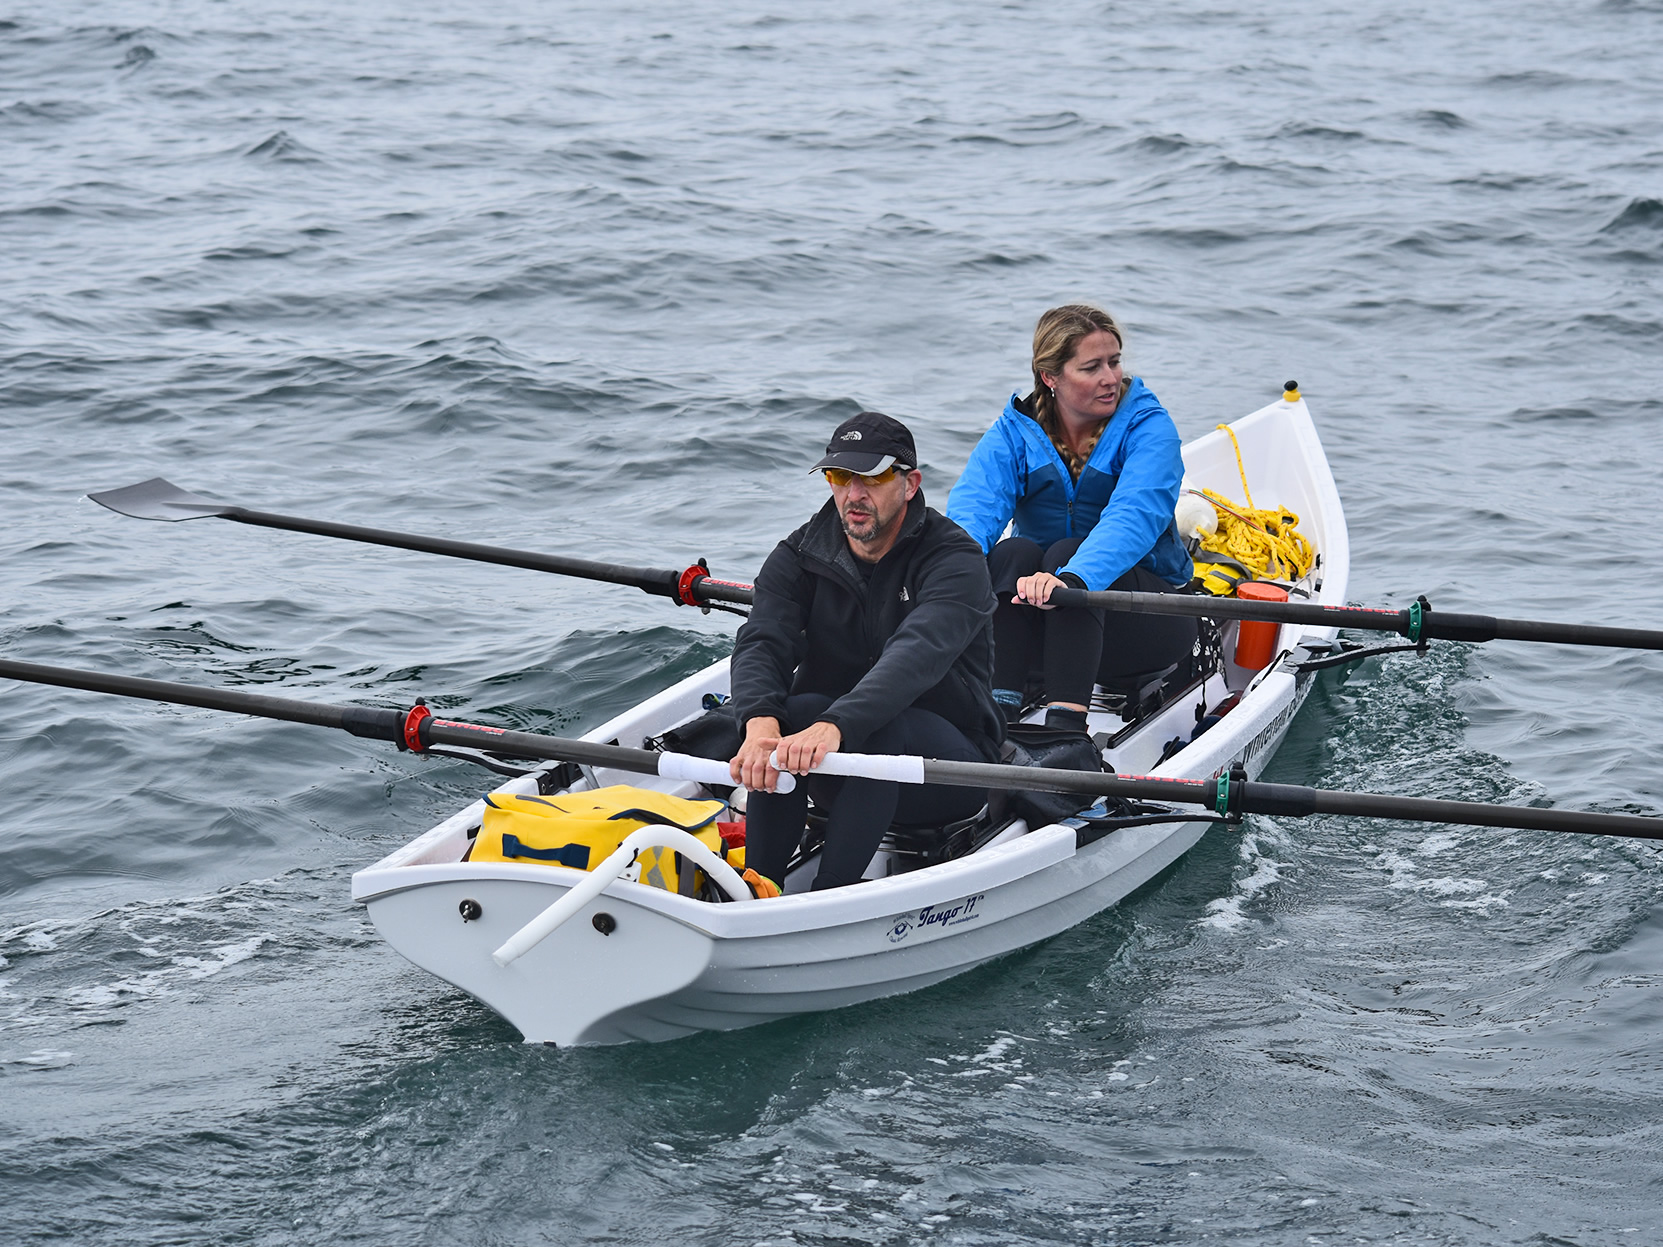 Whitehall-Rowing-and-Sail-Tango-17-Rowboat-Peter-Vogel-R2AK-Race-To-Alaska